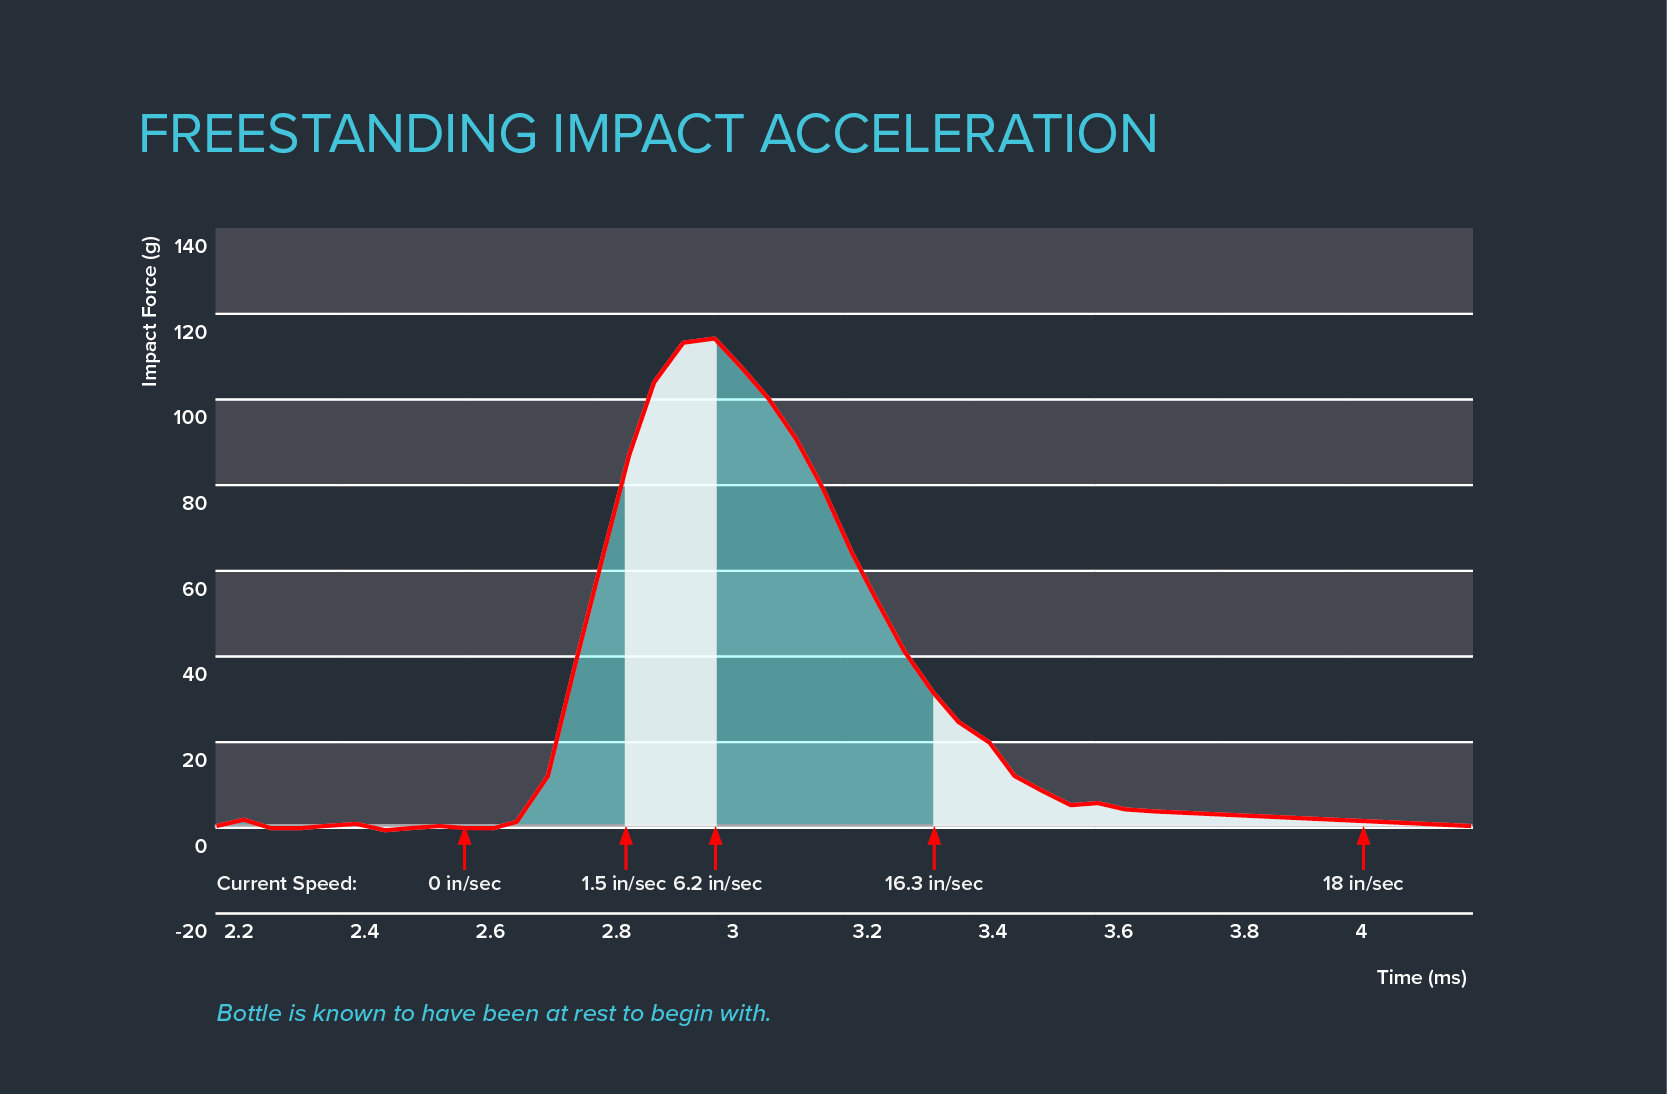 Freestanding Impact Acceleration Graph